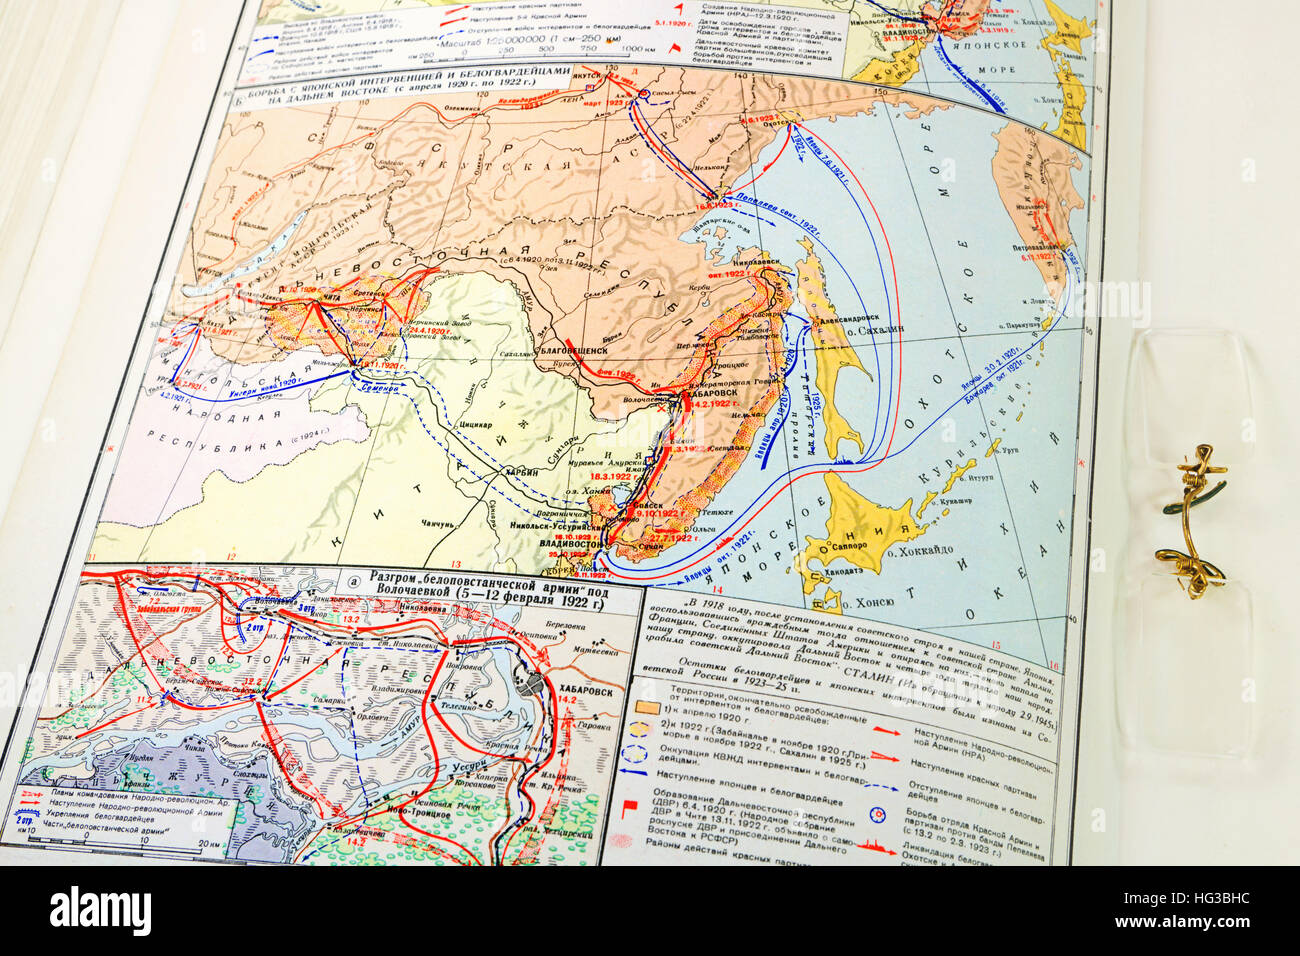 Battle map in the Far East 1920-1922 - Stock Image